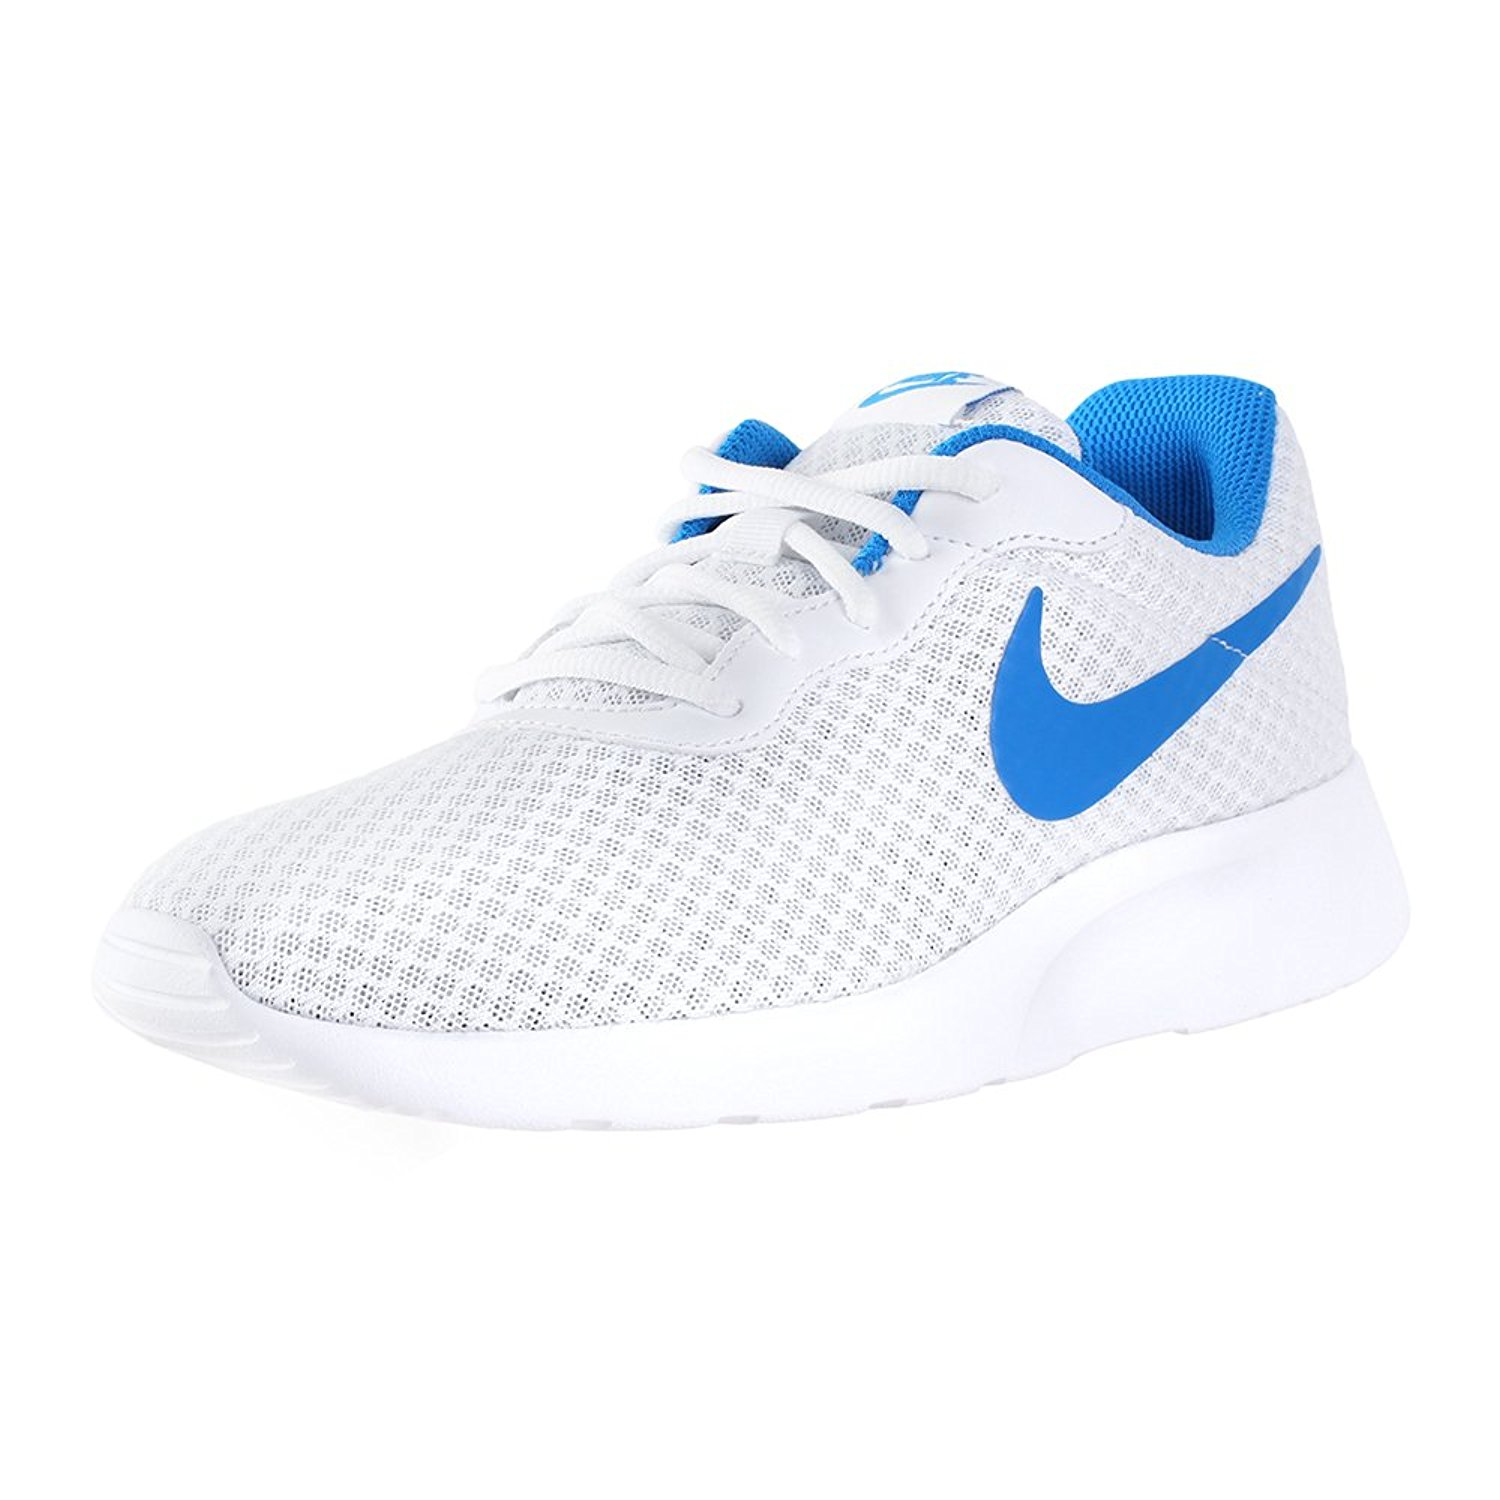 274adfc7a75 Nike Tanjun Mens White Blue Athletic Comfort Casual Fashion Sneaker ...